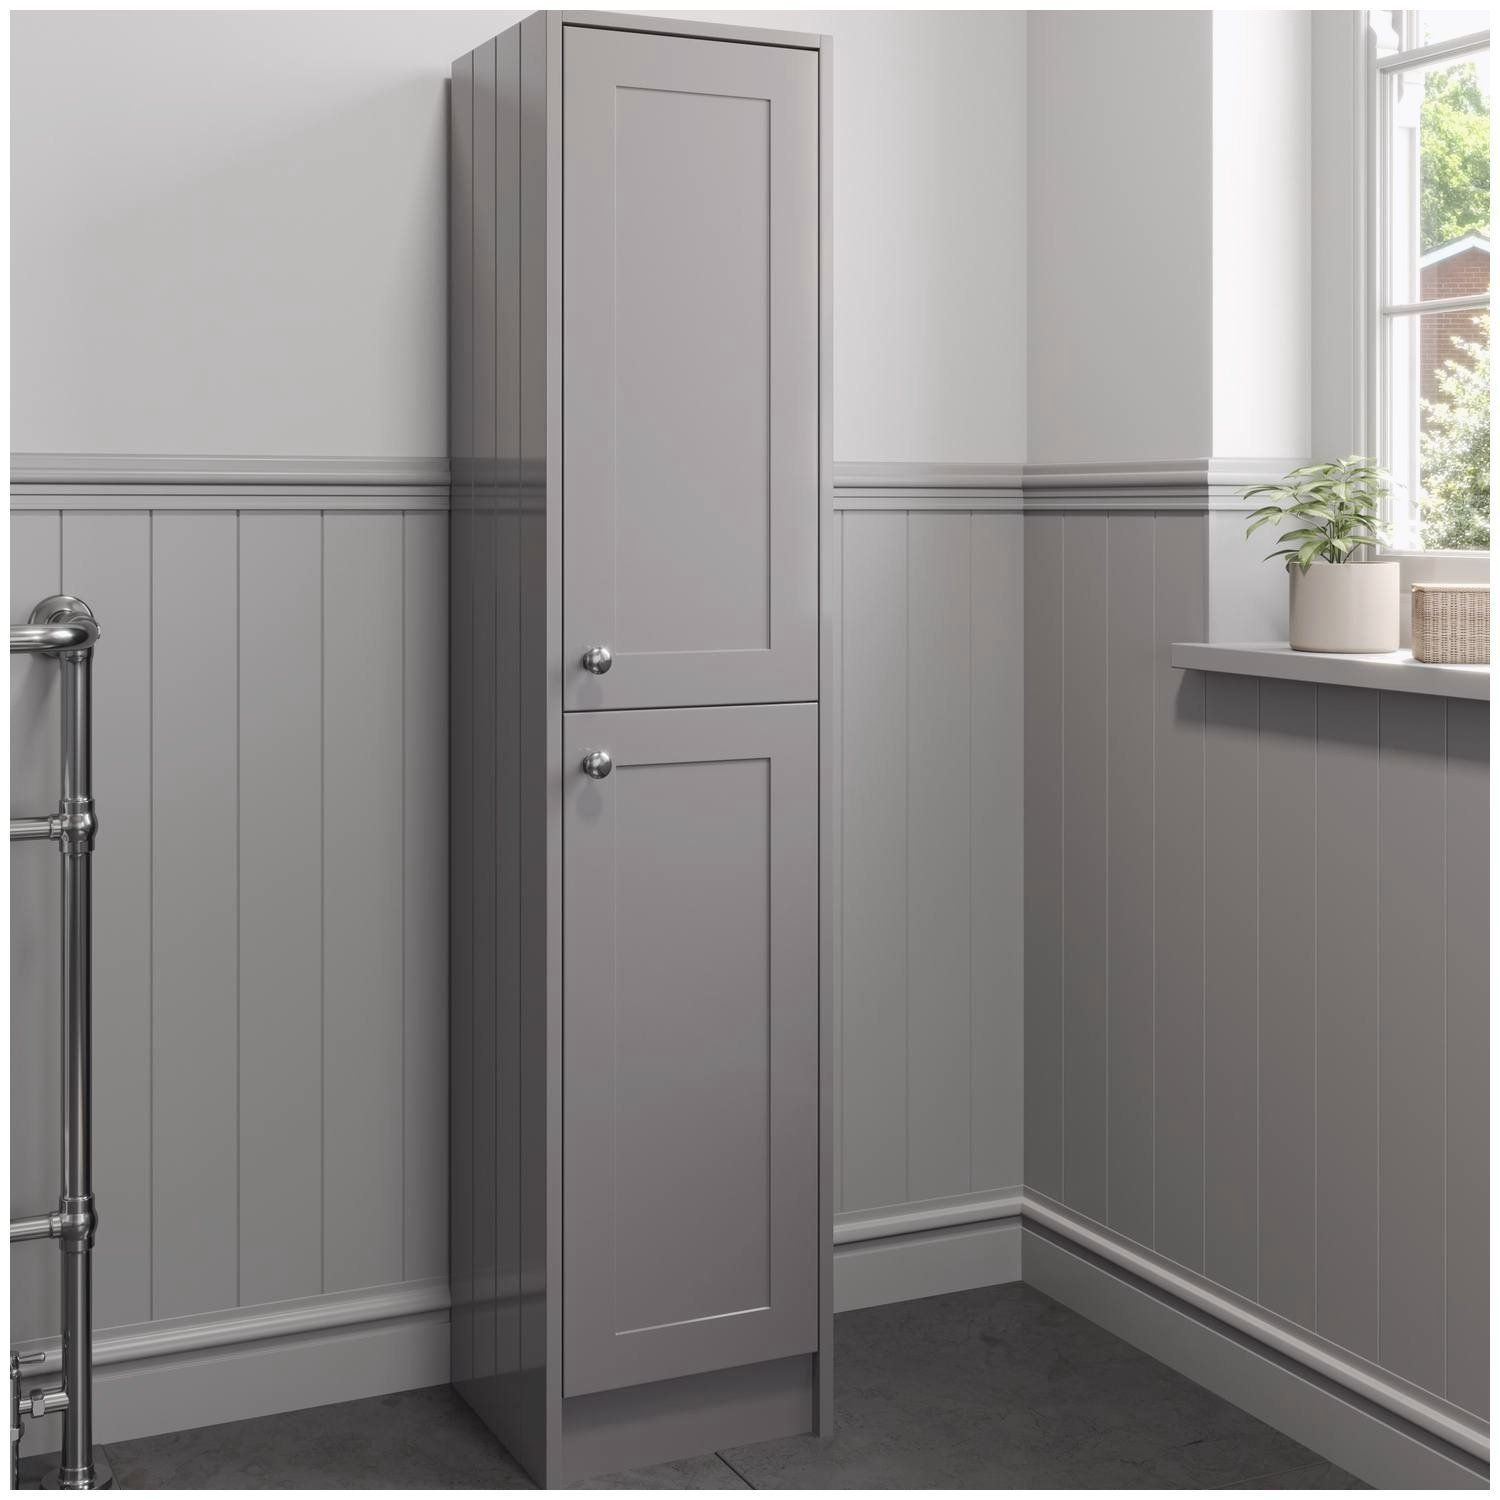 Lowes Clearance Bathroom Vanities In 2020 With Images Tall Bathroom Storage Tall Bathroom Storage Cabinet Tall Cabinet Storage